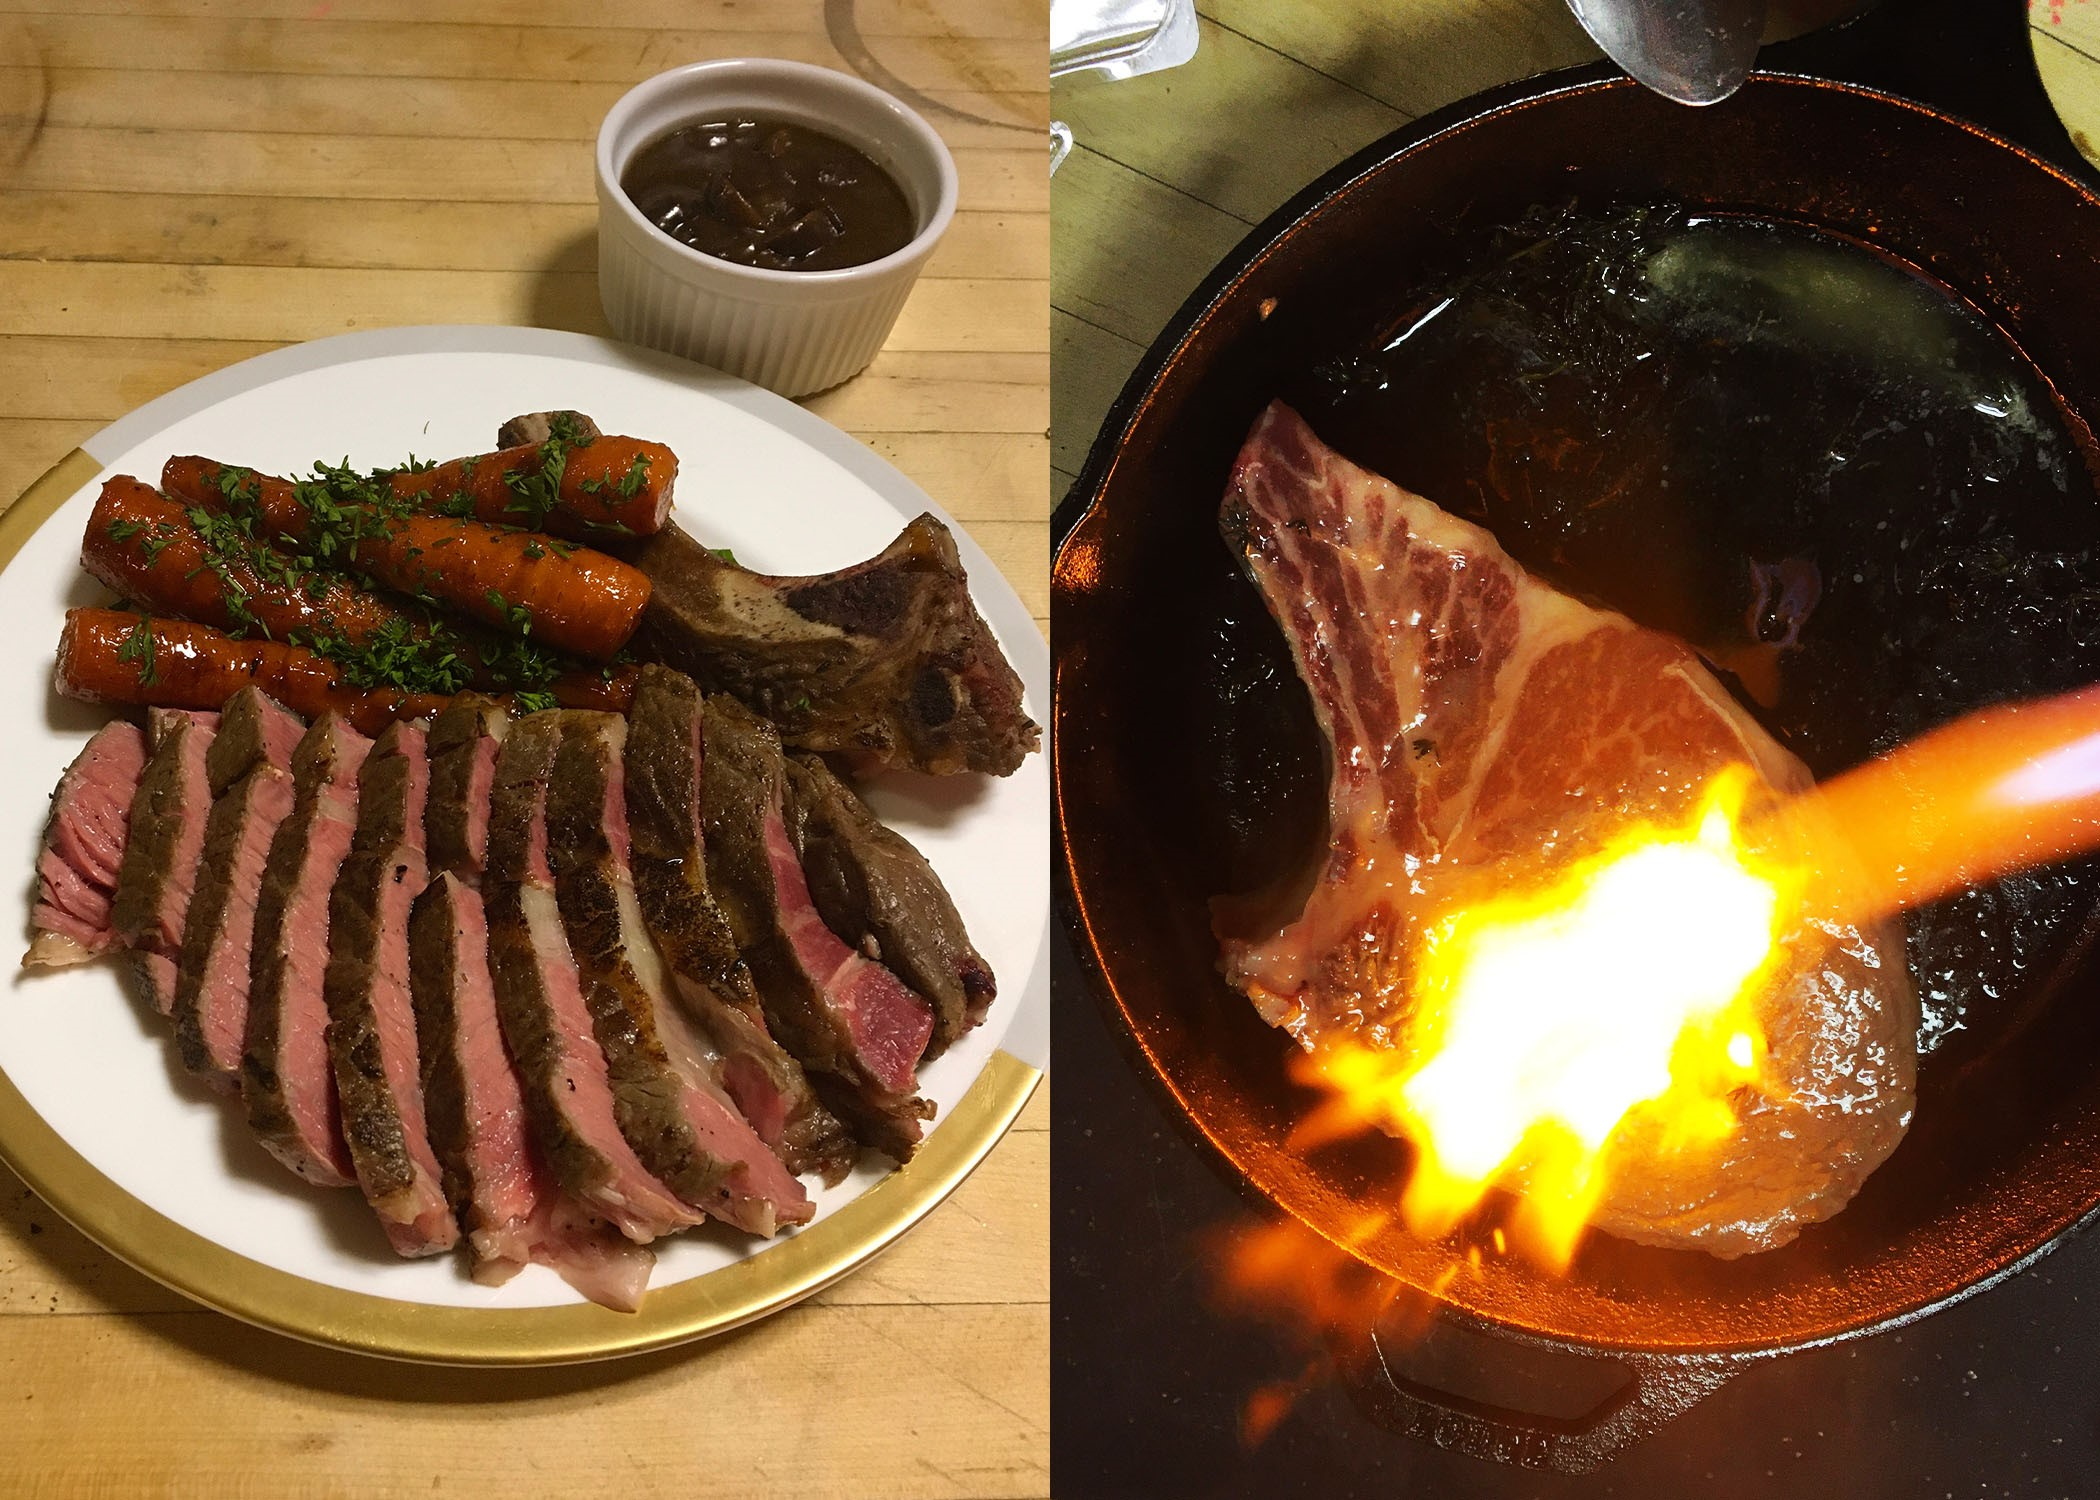 picture divided into two parts. left is ribeye slices, carrots, and sauce on a plate; right is a steak being blowtorched